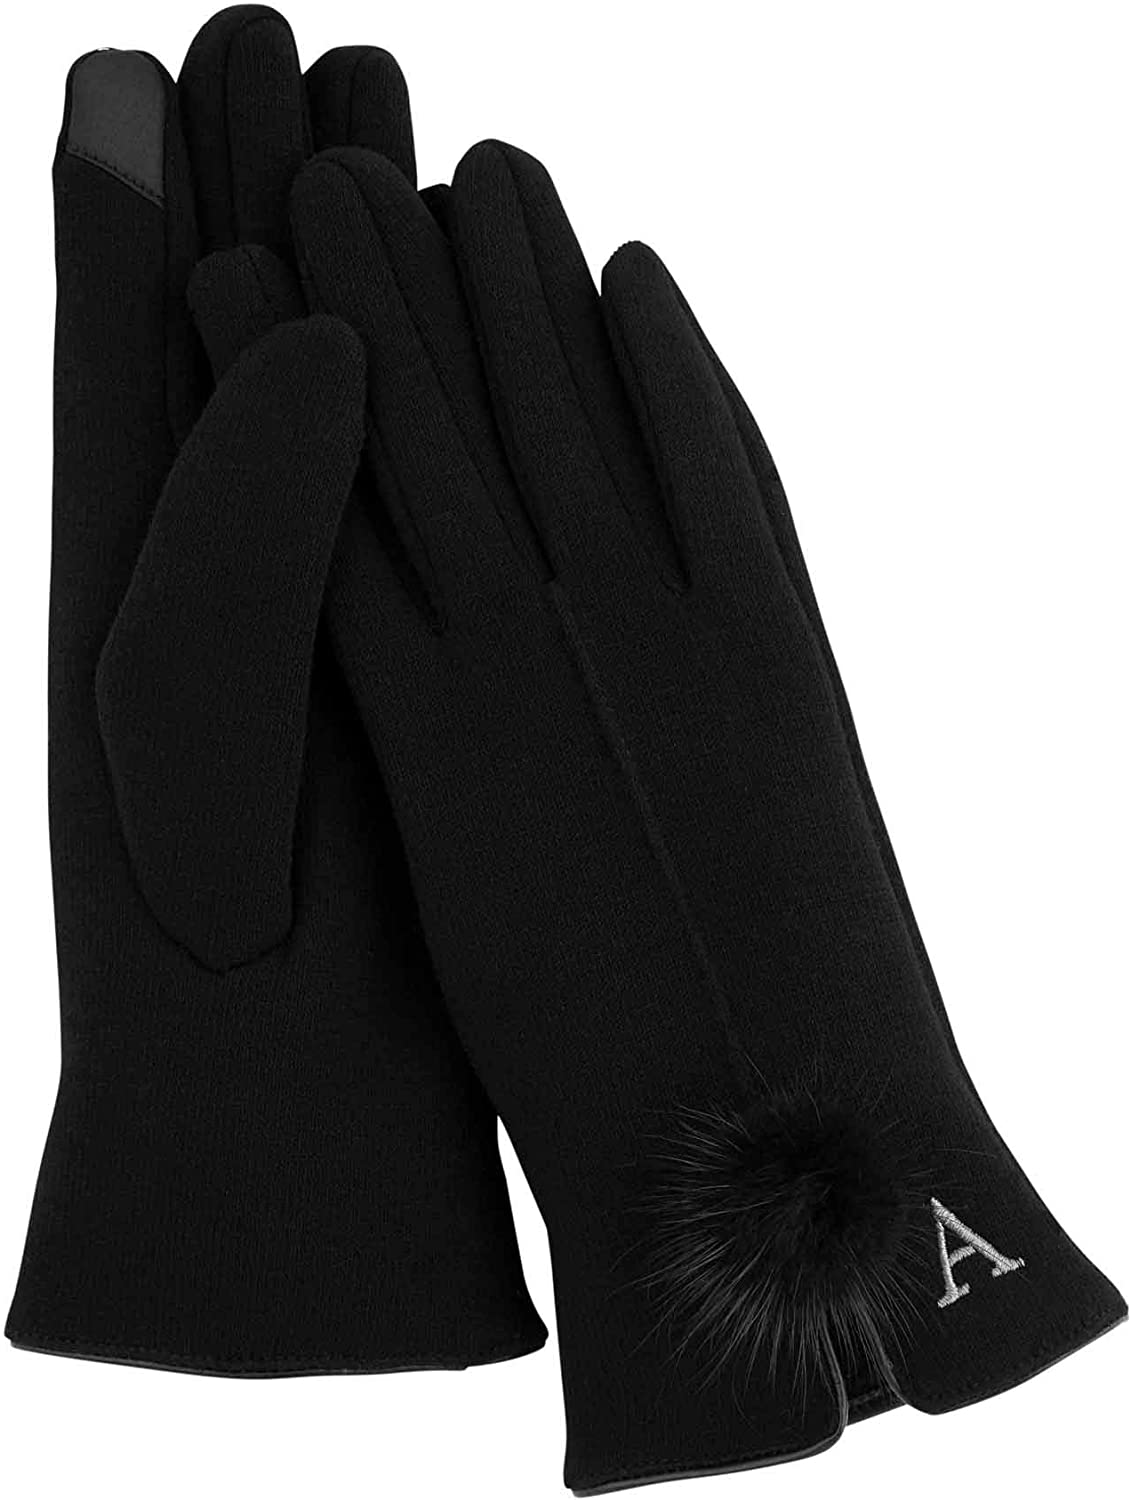 Mud Pie Women's Initial Poof Glove H, Black, One Size Fits Most